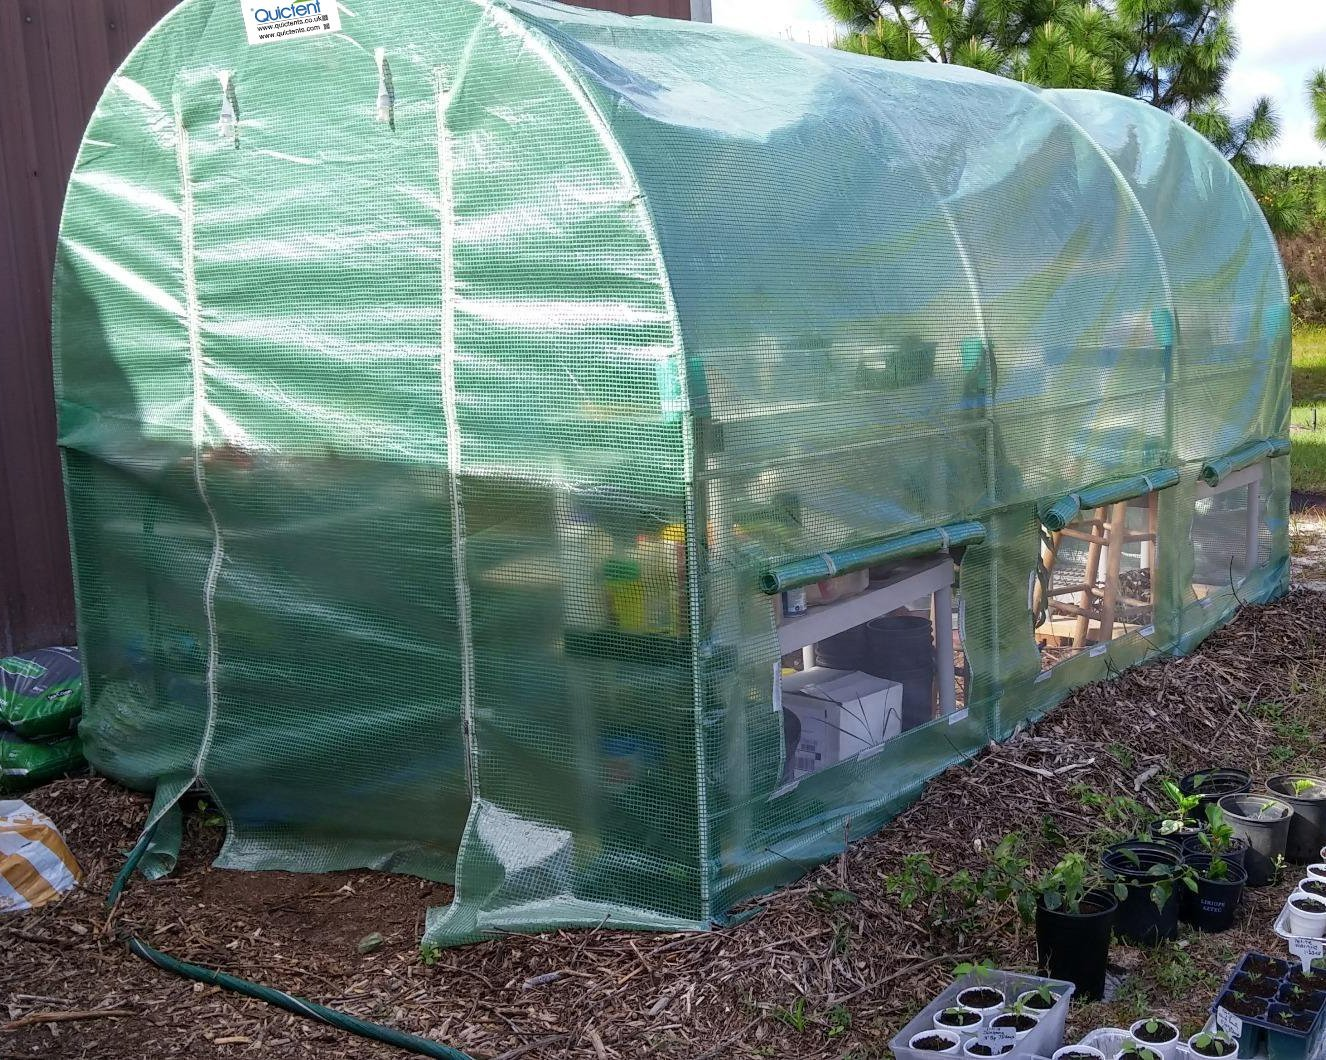 Quictent KOREA Reinforced PE Cover Greenhouse 15'x7'x7' Arch LARGE Walk in Green Garden... by